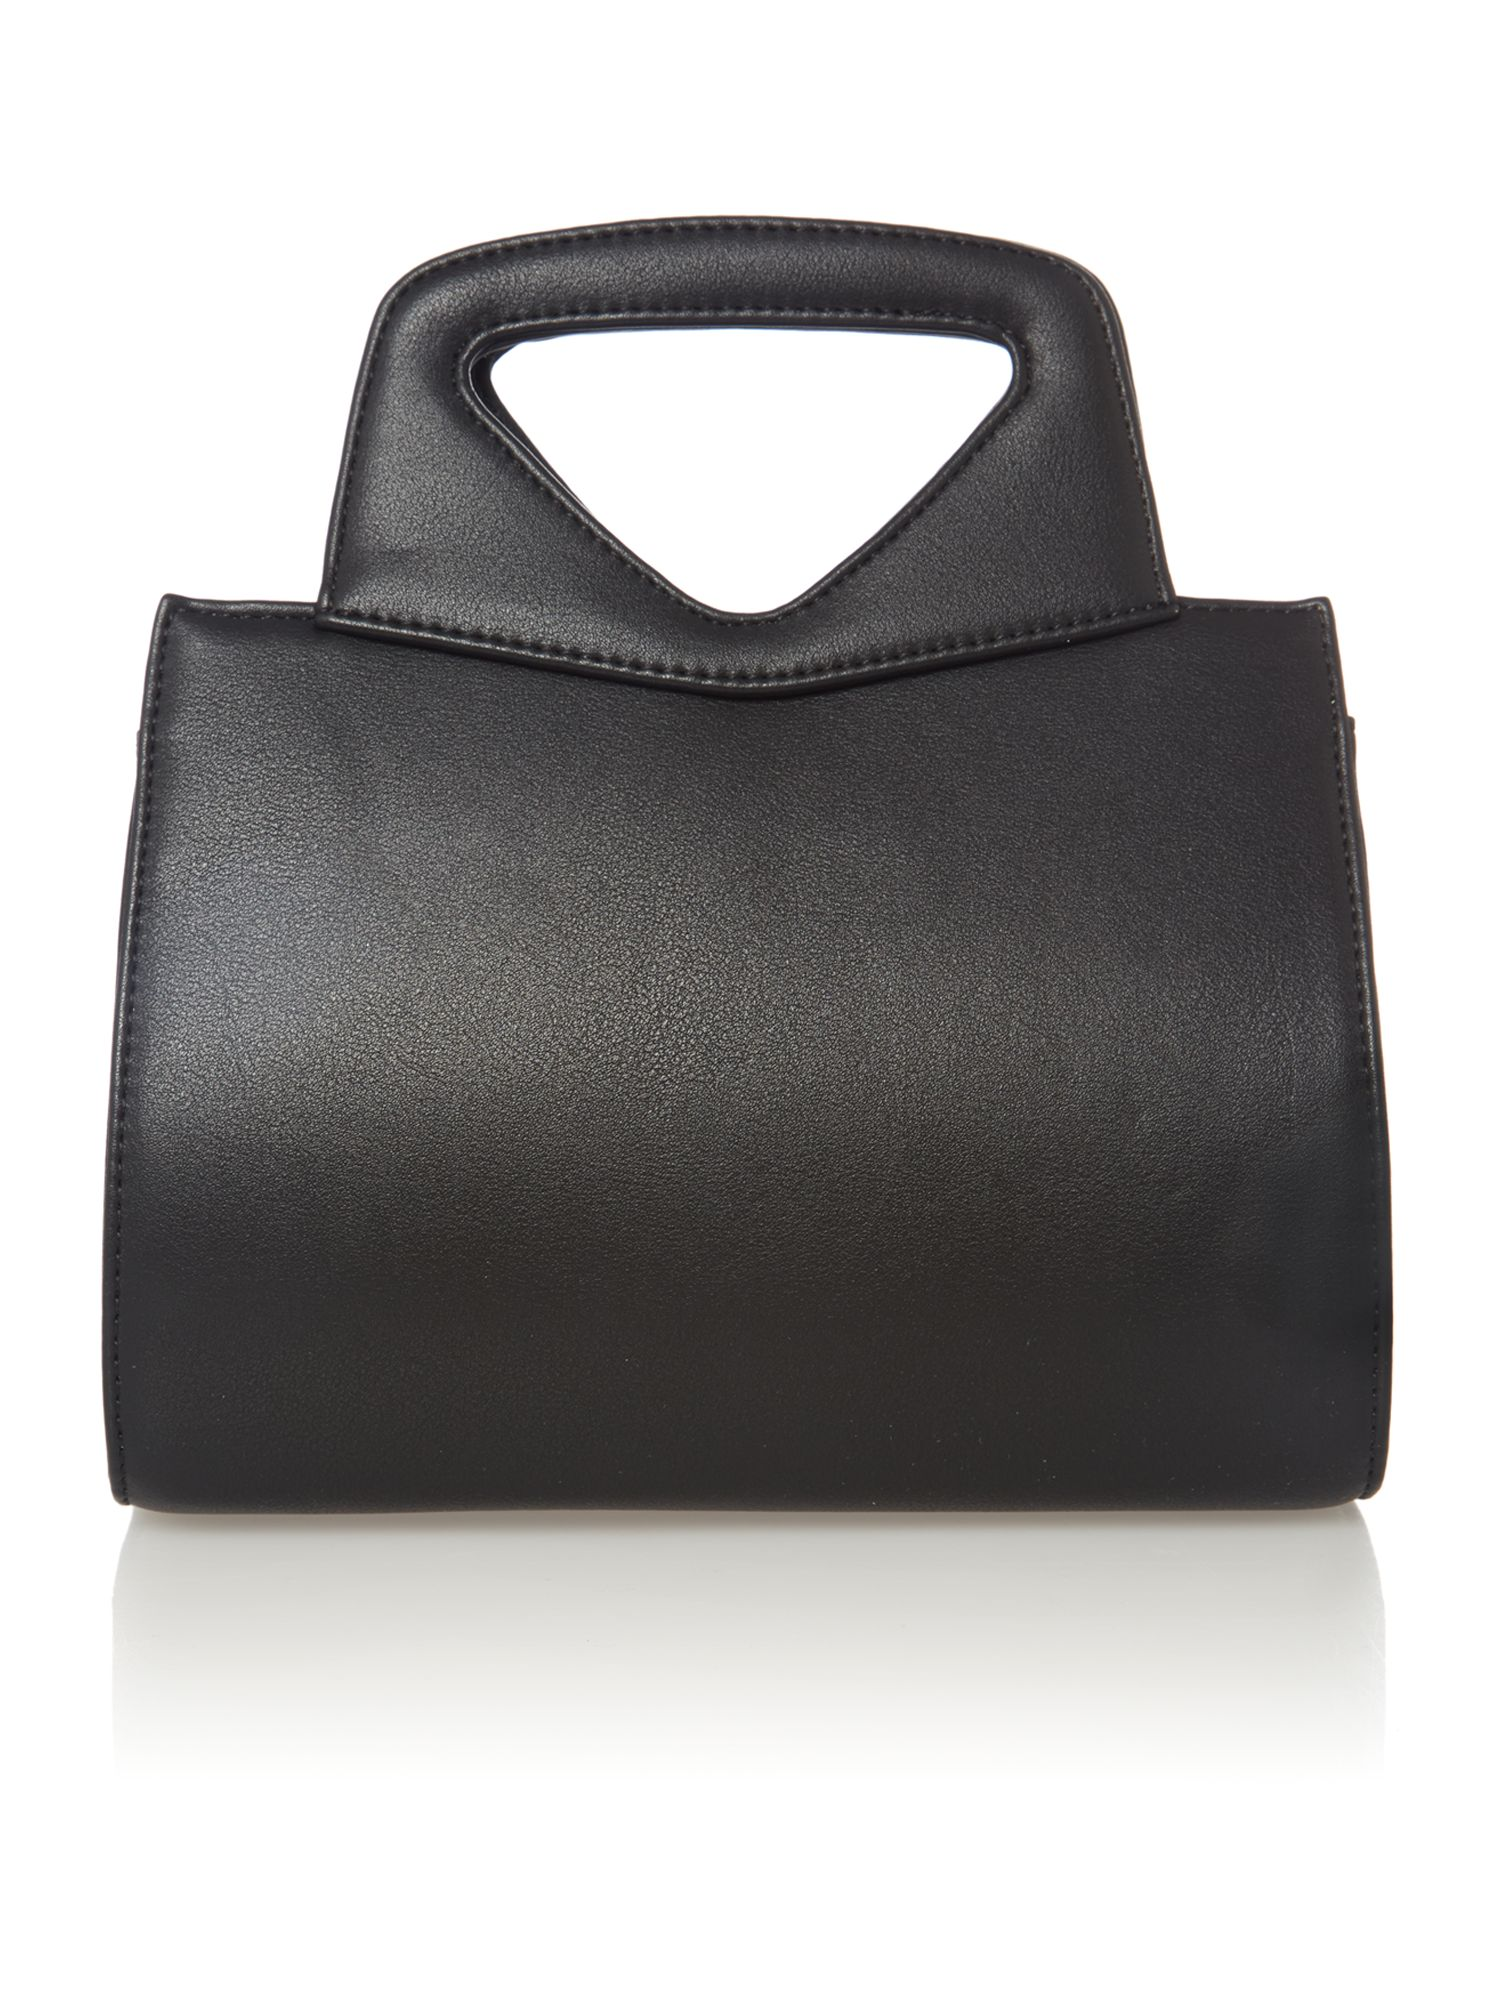 Toby black small cross body bag